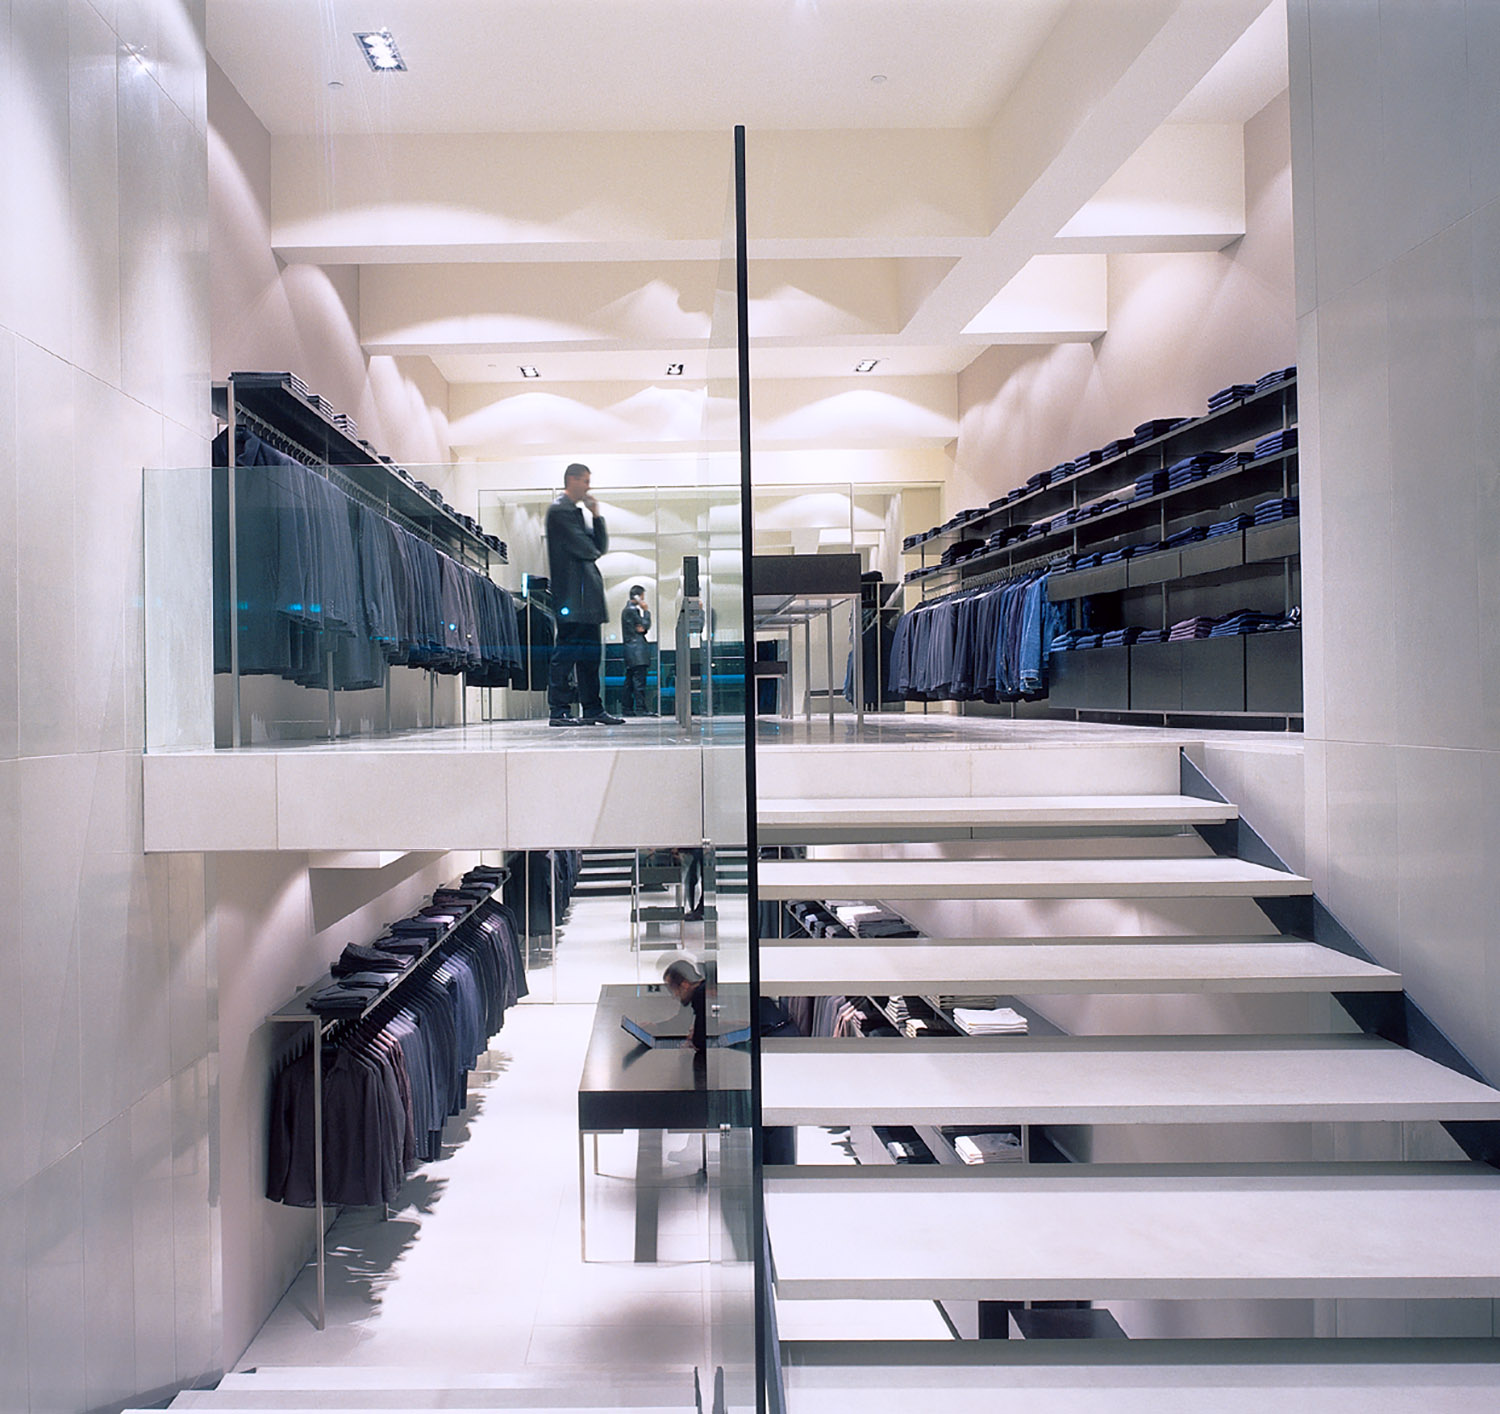 Interior tile Retail Calibre Sydney Shale Smooth 811 x 405 and 1200 x 405 pencil round stair trends and nosing w.jpg